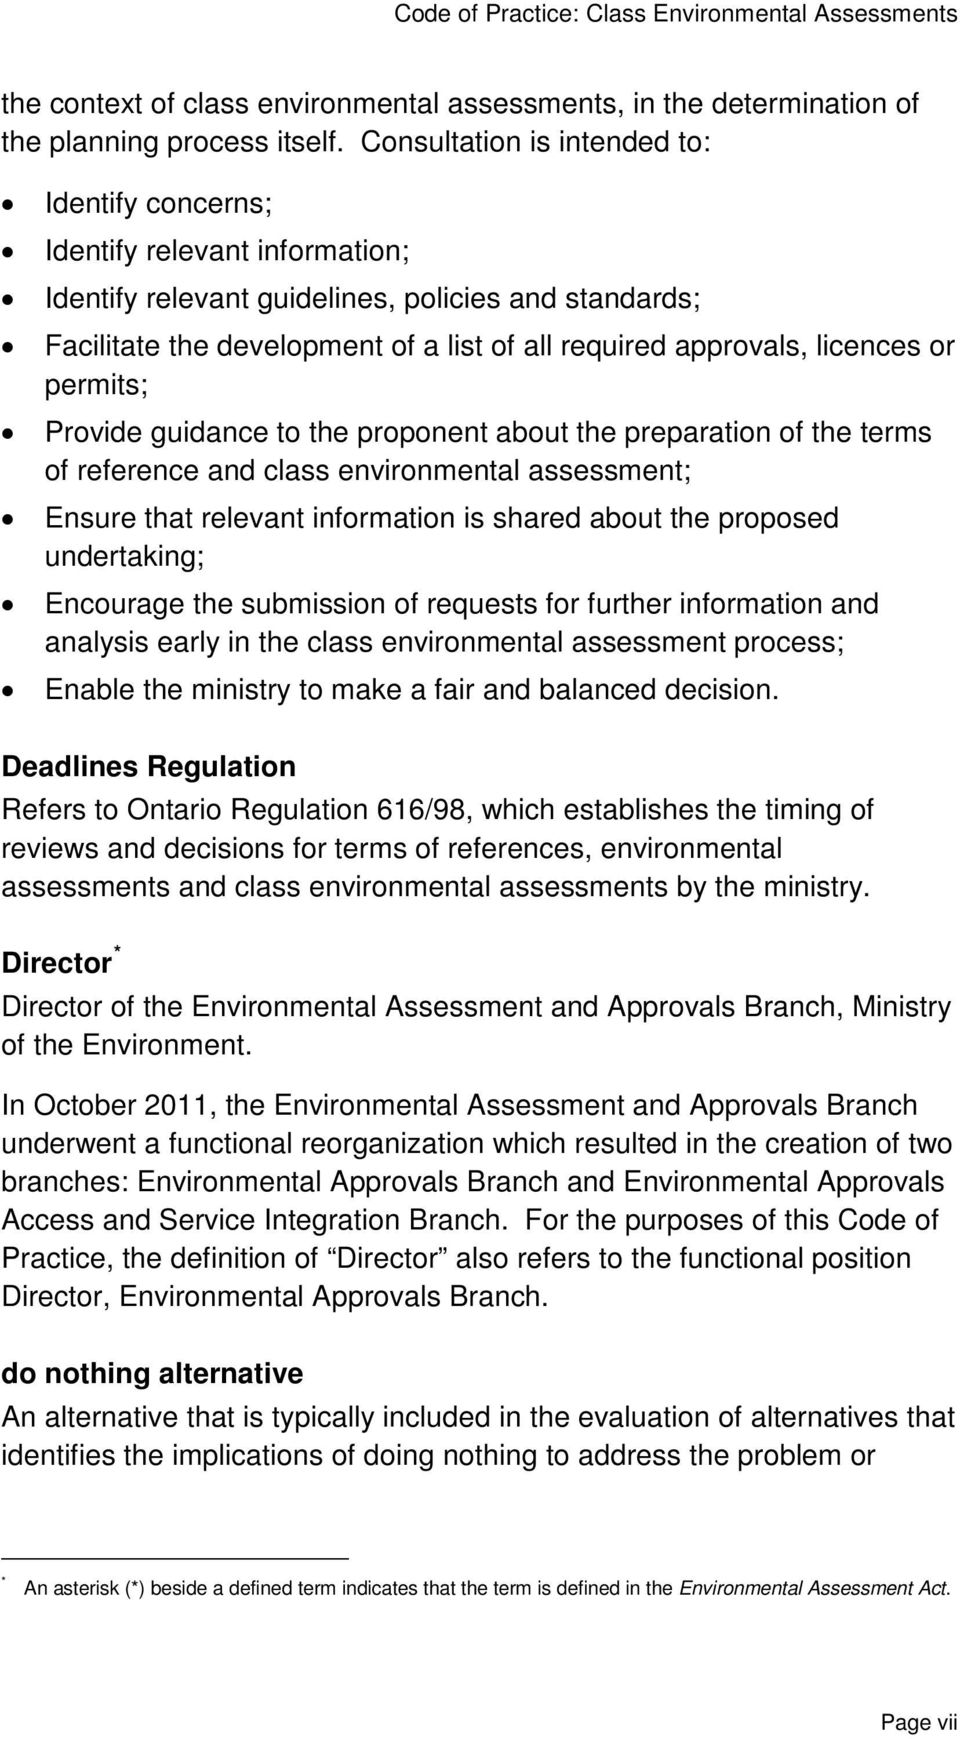 licences or permits; Provide guidance to the proponent about the preparation of the terms of reference and class environmental assessment; Ensure that relevant information is shared about the